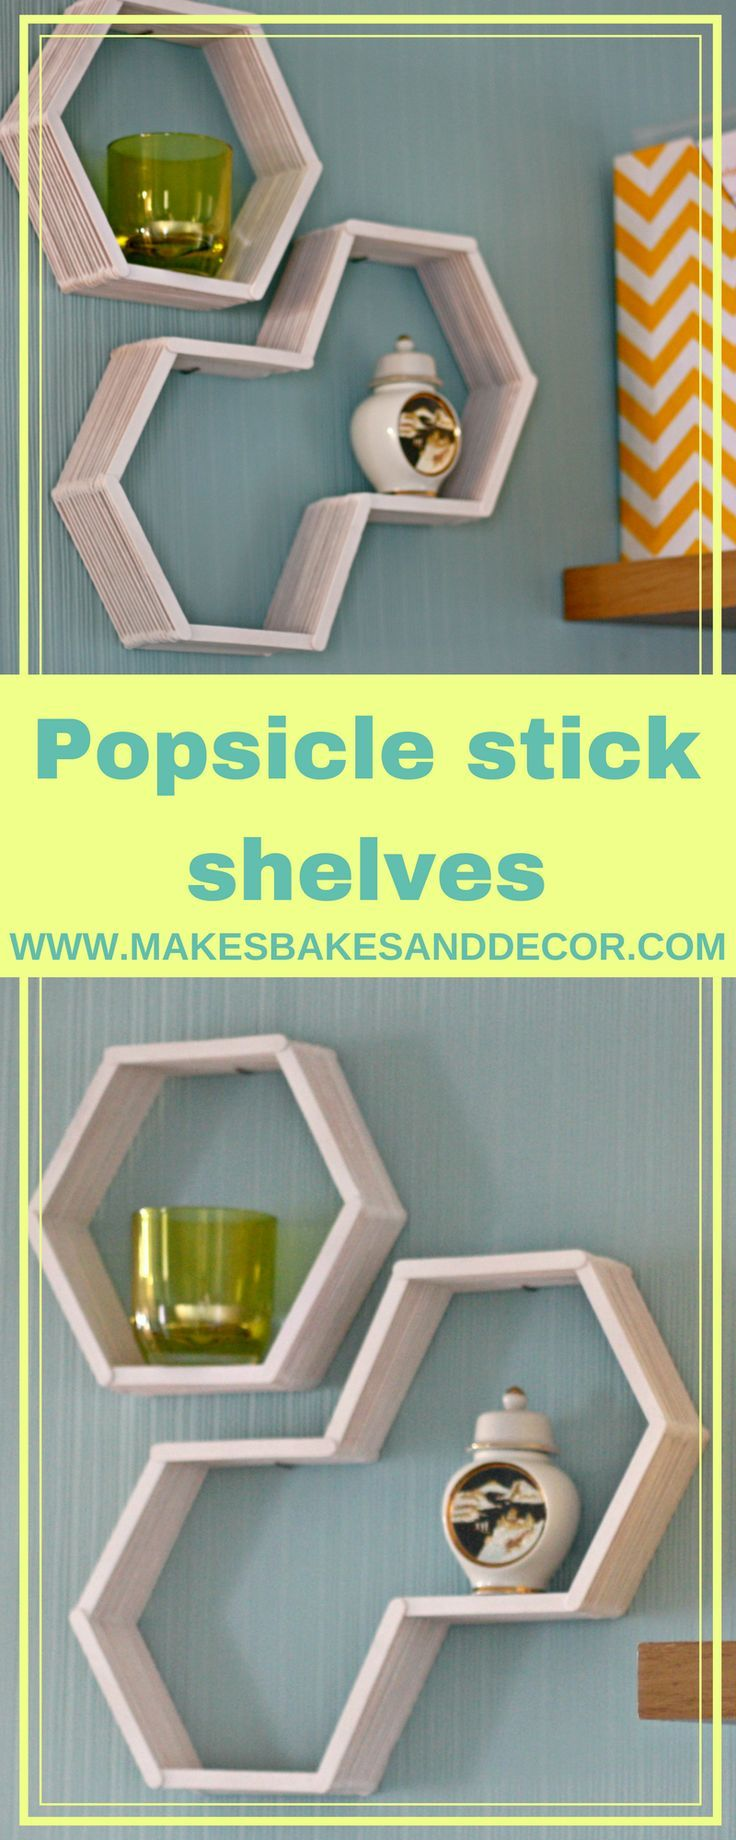 popsicle stick display shelves shelves made with just some popsicle sticks! A really cute and easy craft1